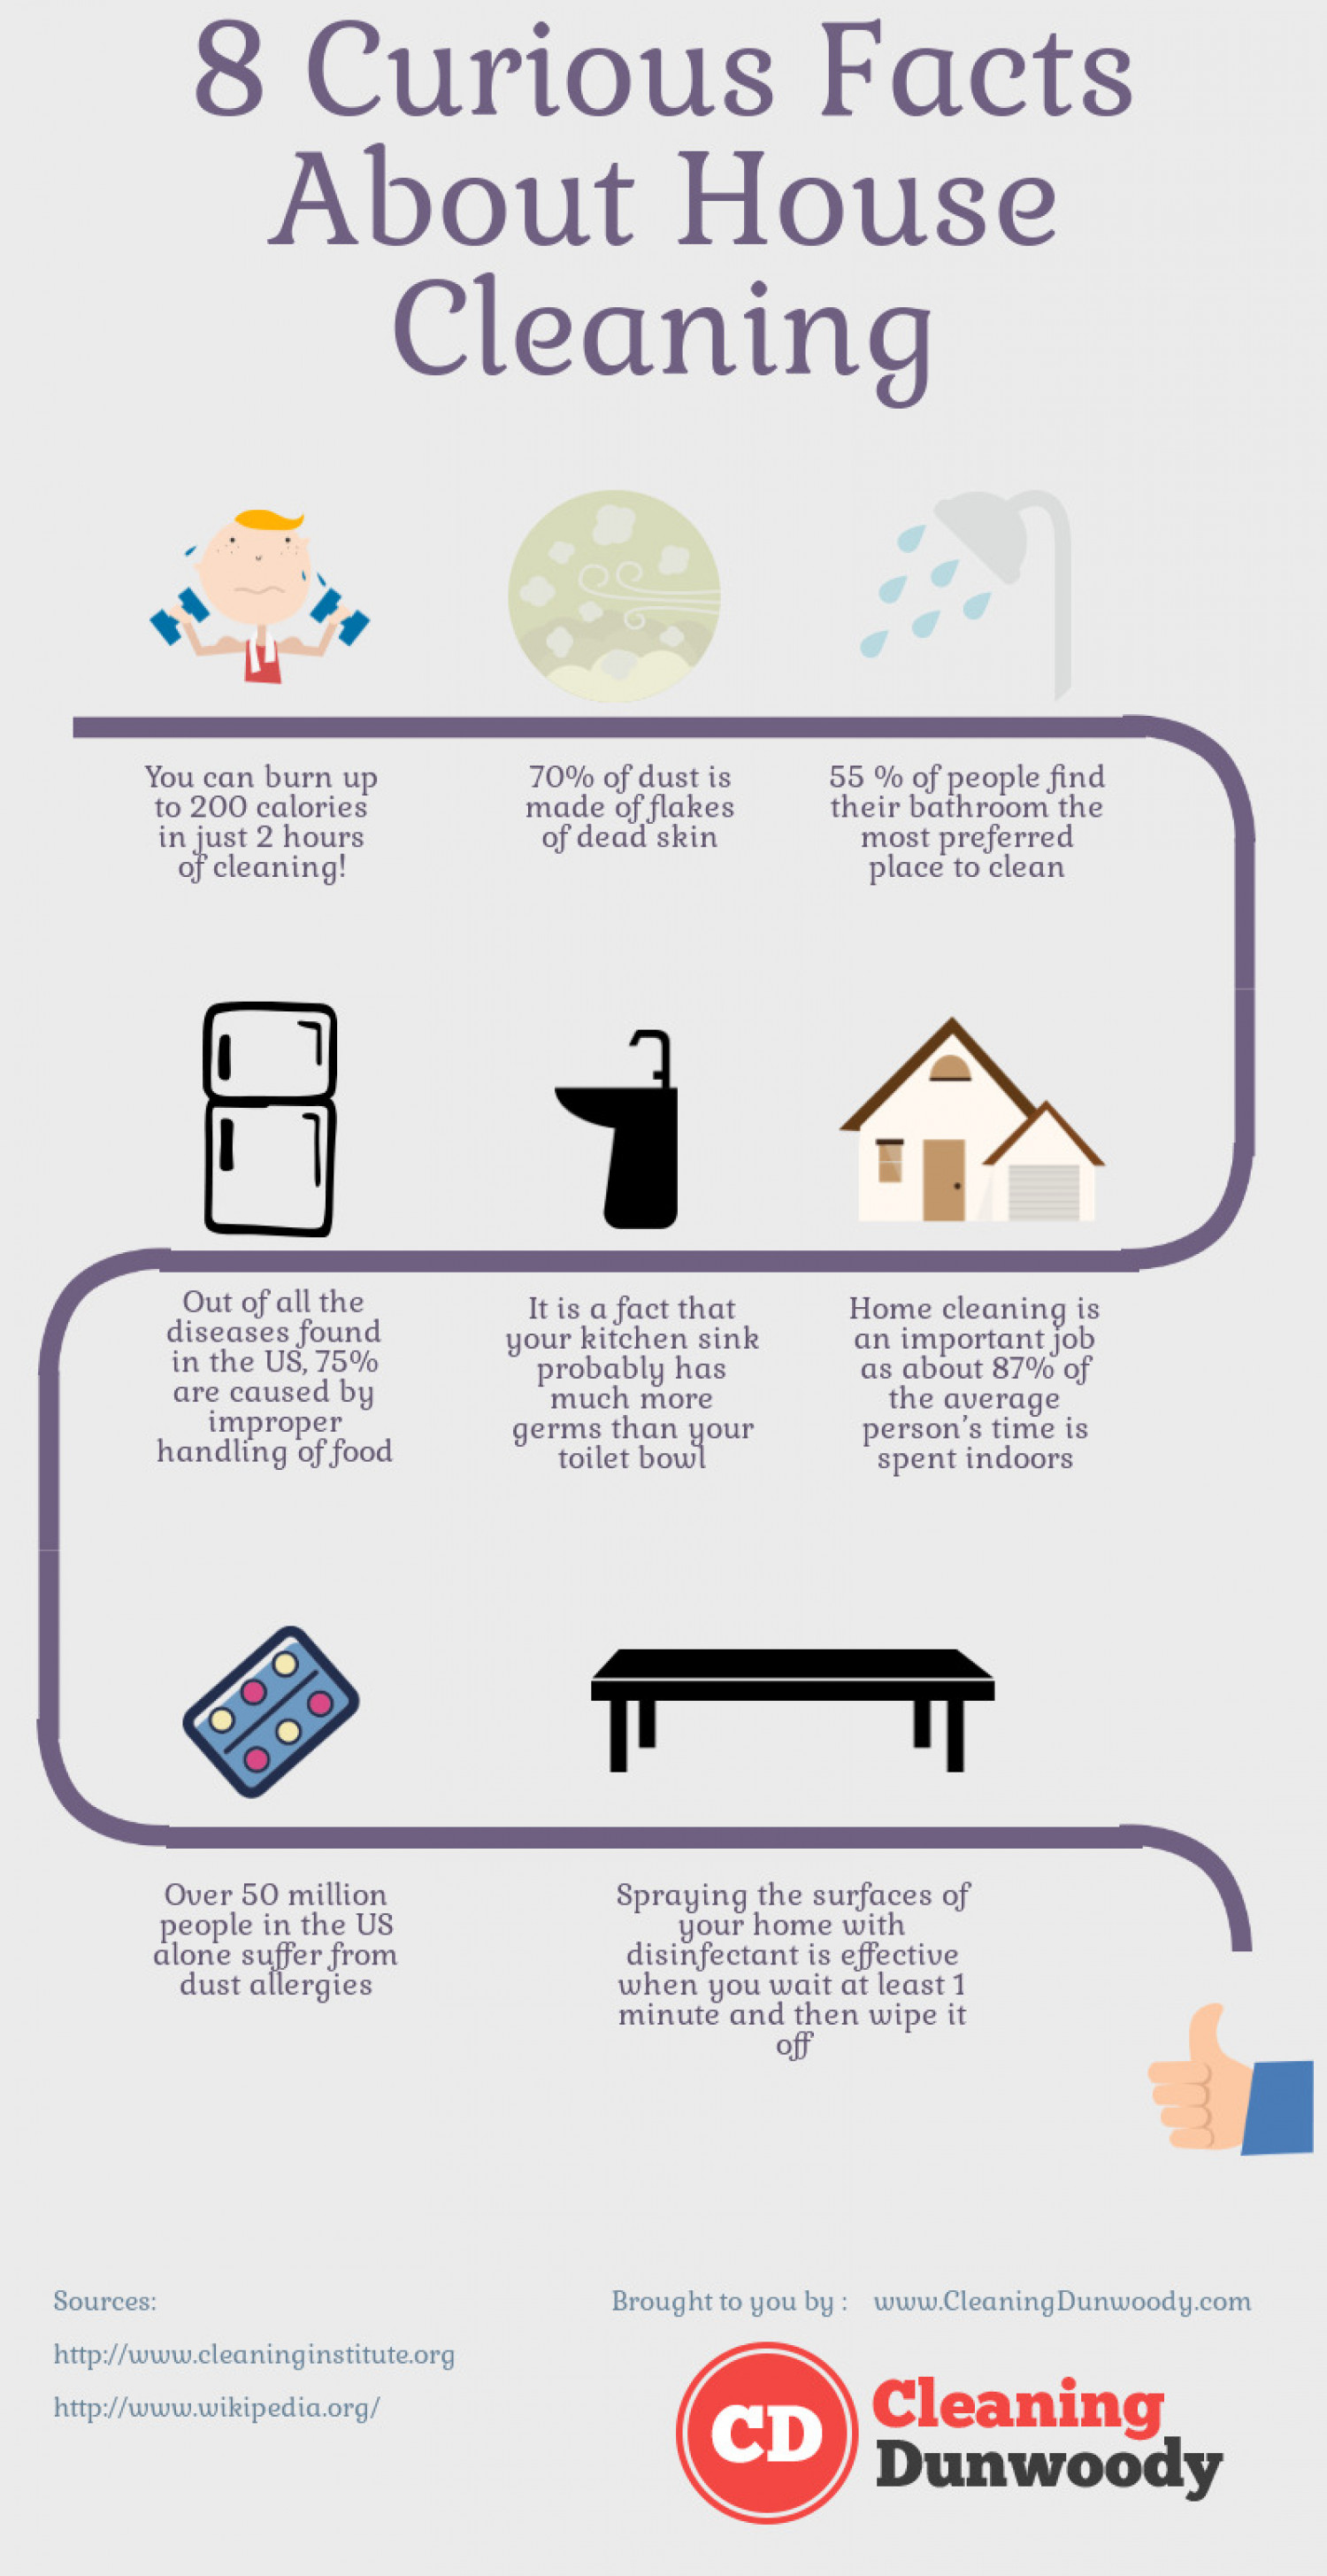 8-curious-facts-about-house-cleaning_551